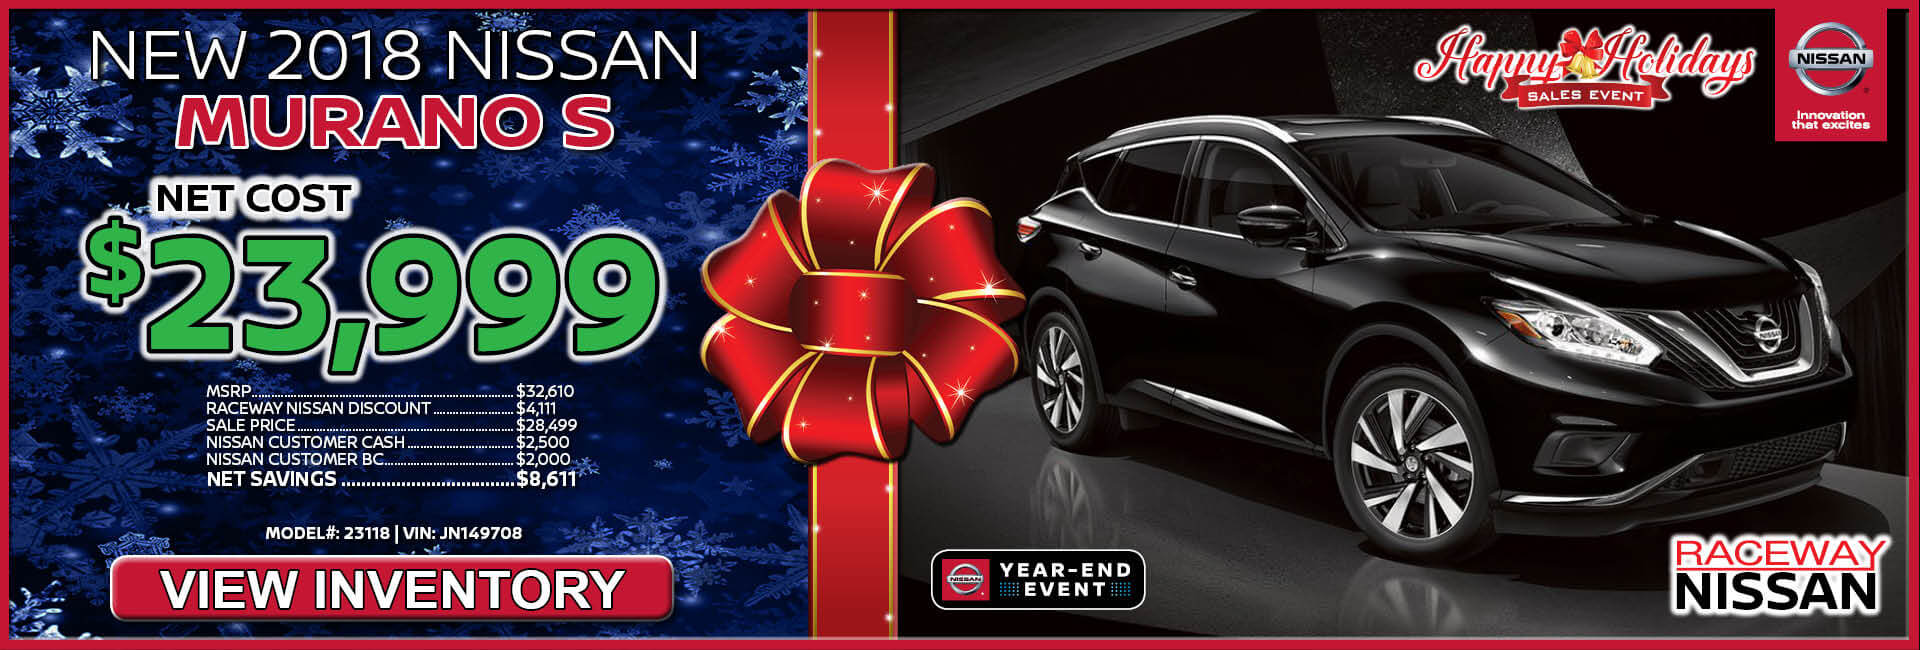 Nissan Murano $23,999 Purchase